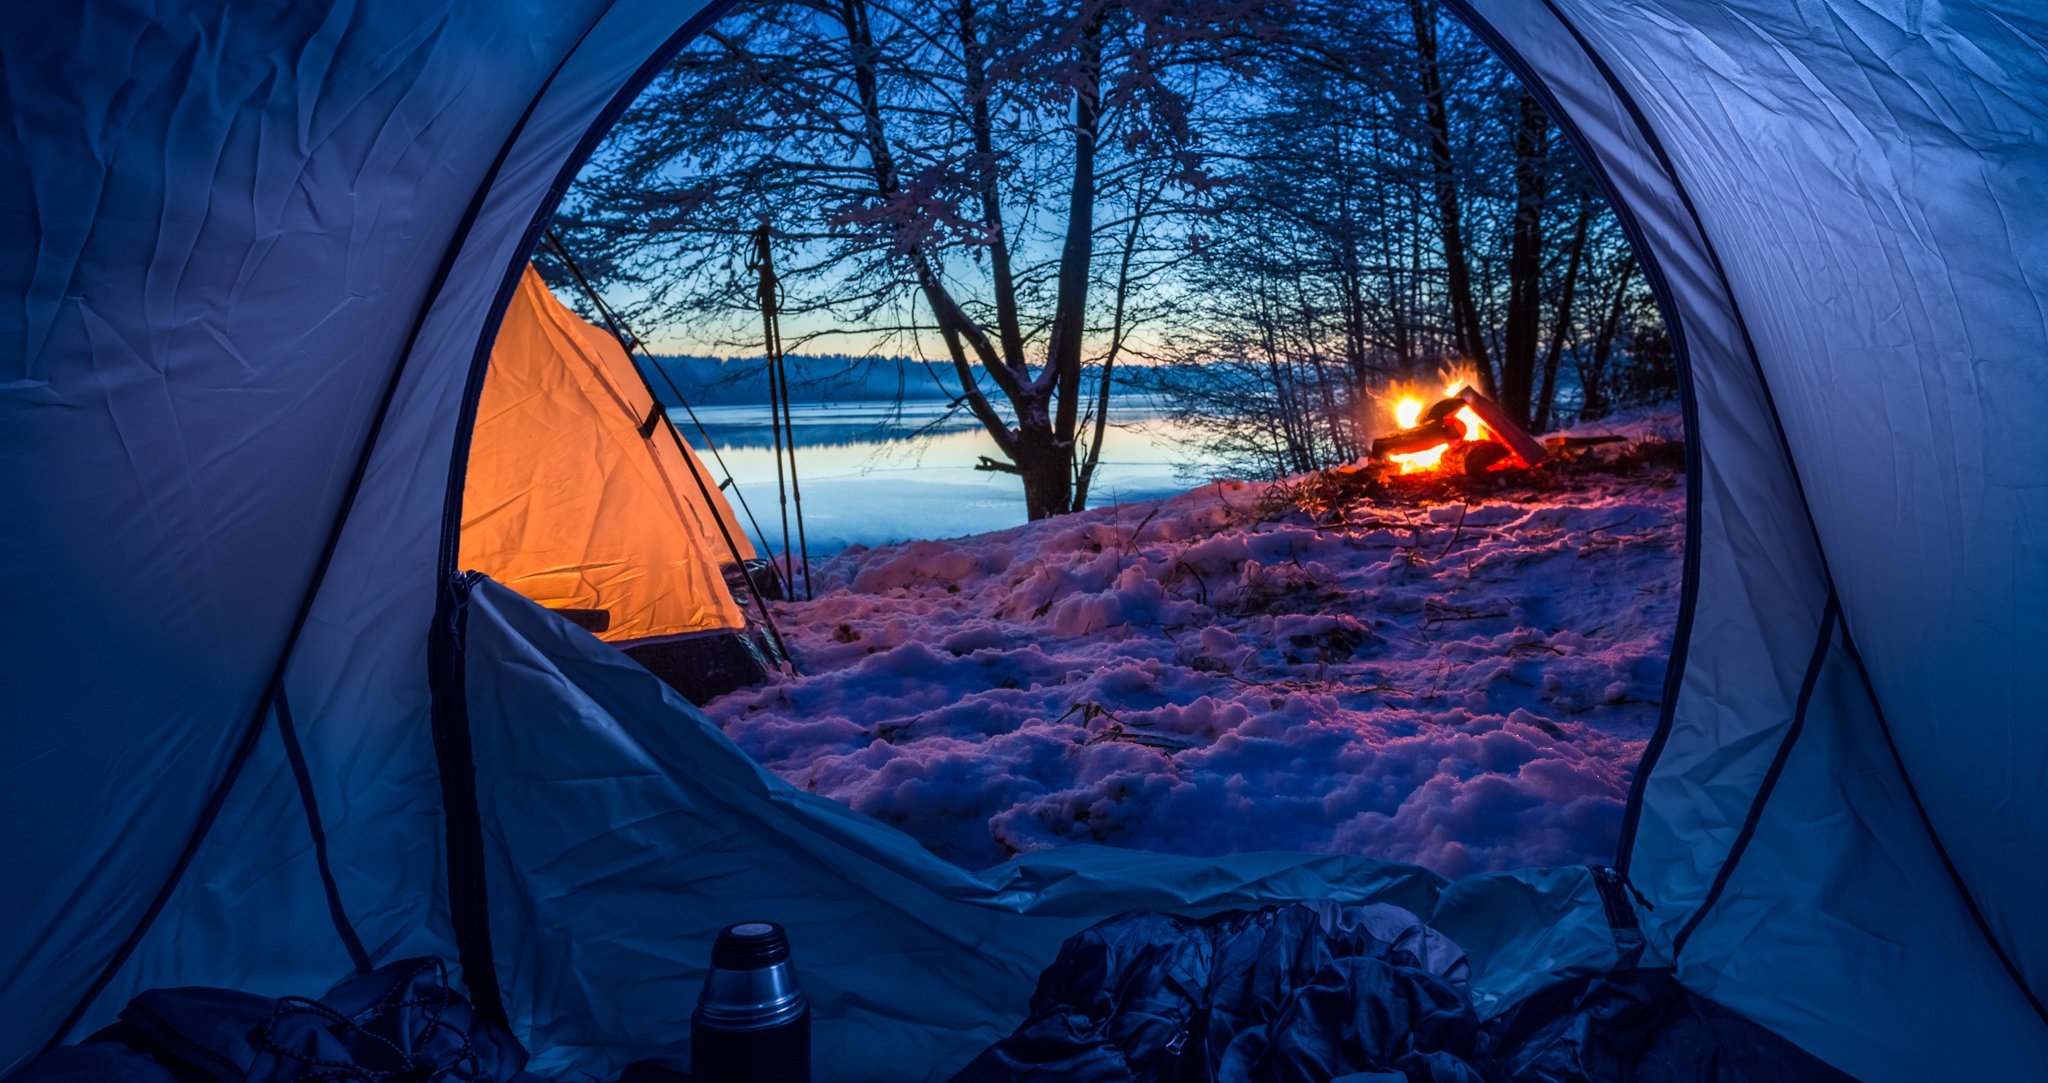 9 Tips To Extend Camping To The Fall And Winter